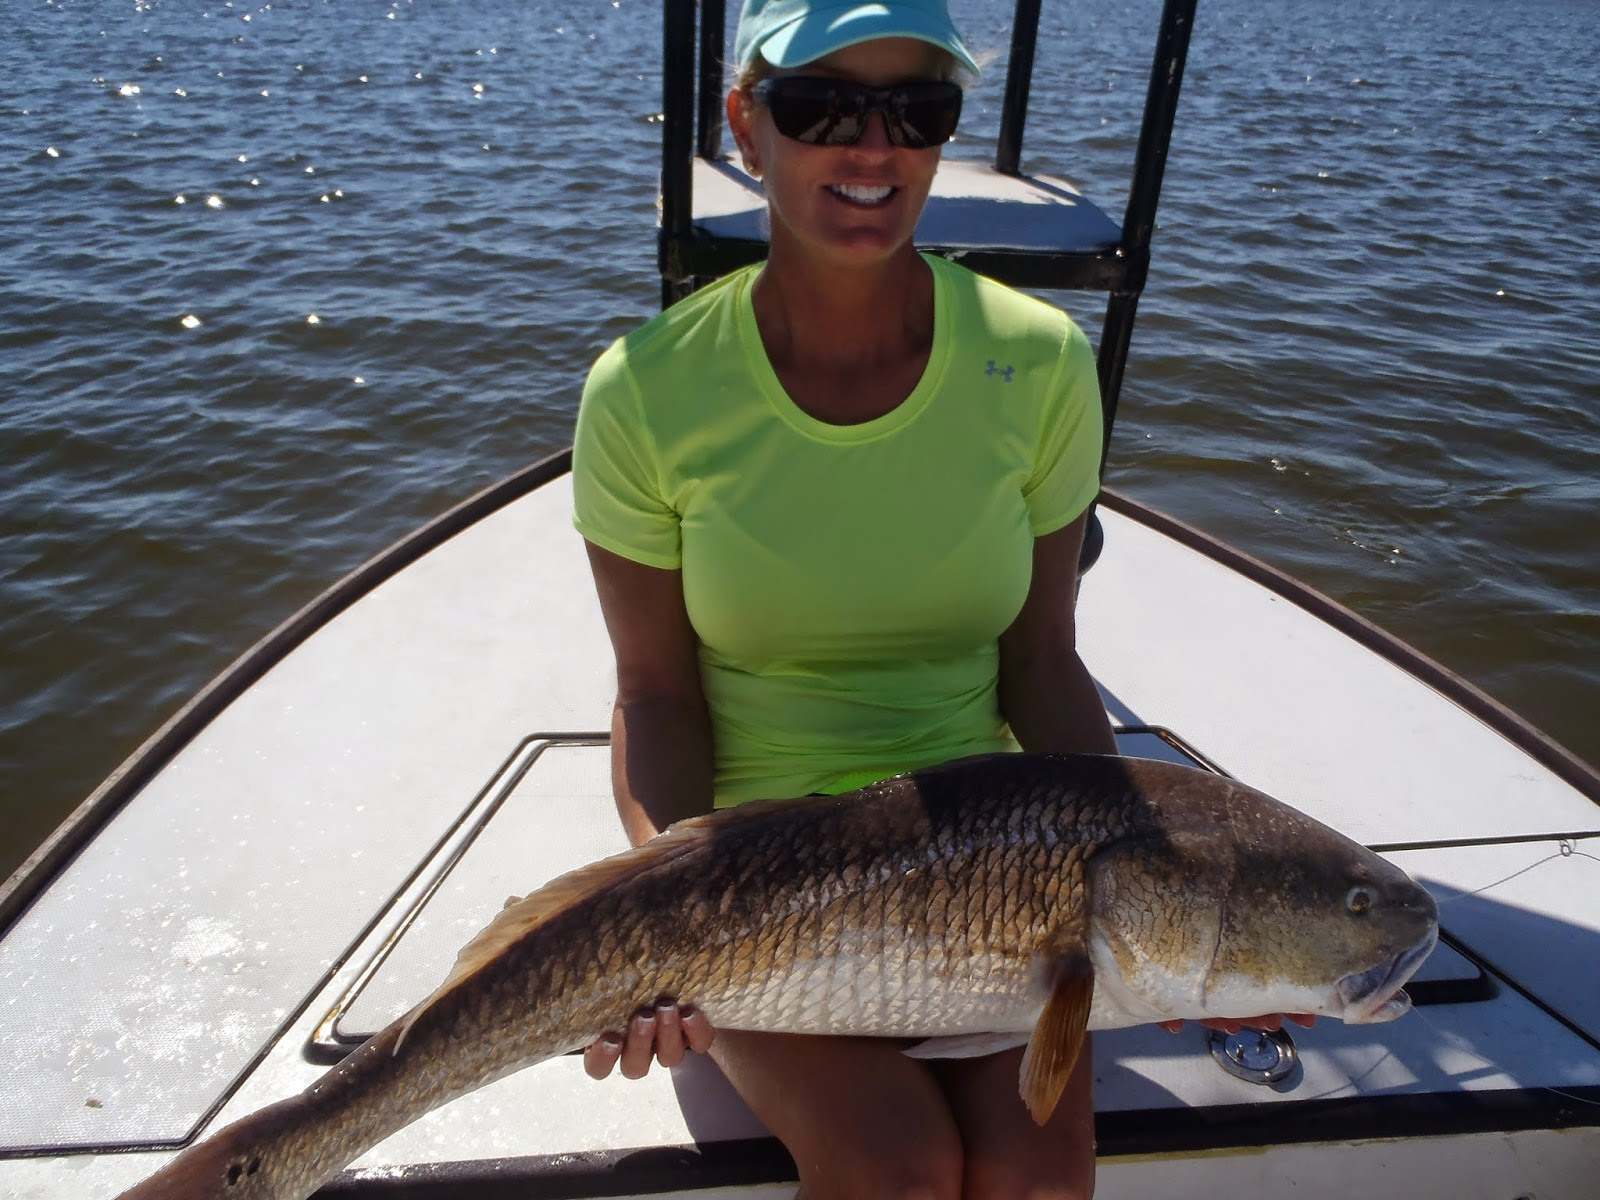 Redfishing louisiana a guides journey for Louisiana redfish fly fishing